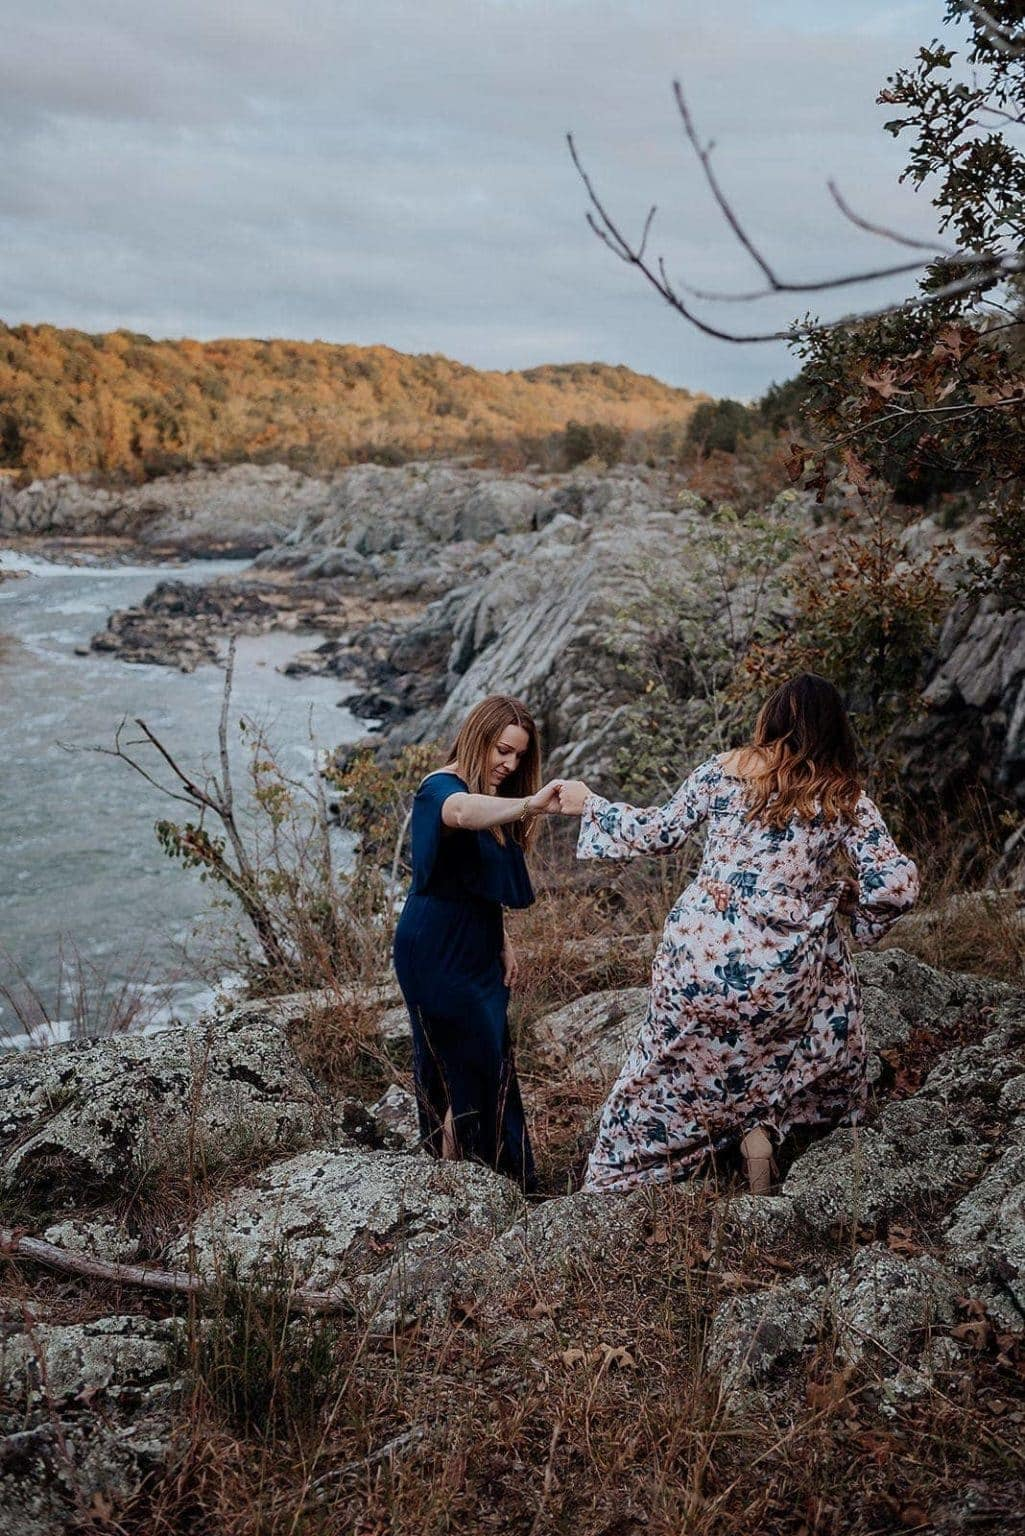 A woman helps her partner climb down a rocky slope at Great Falls Park